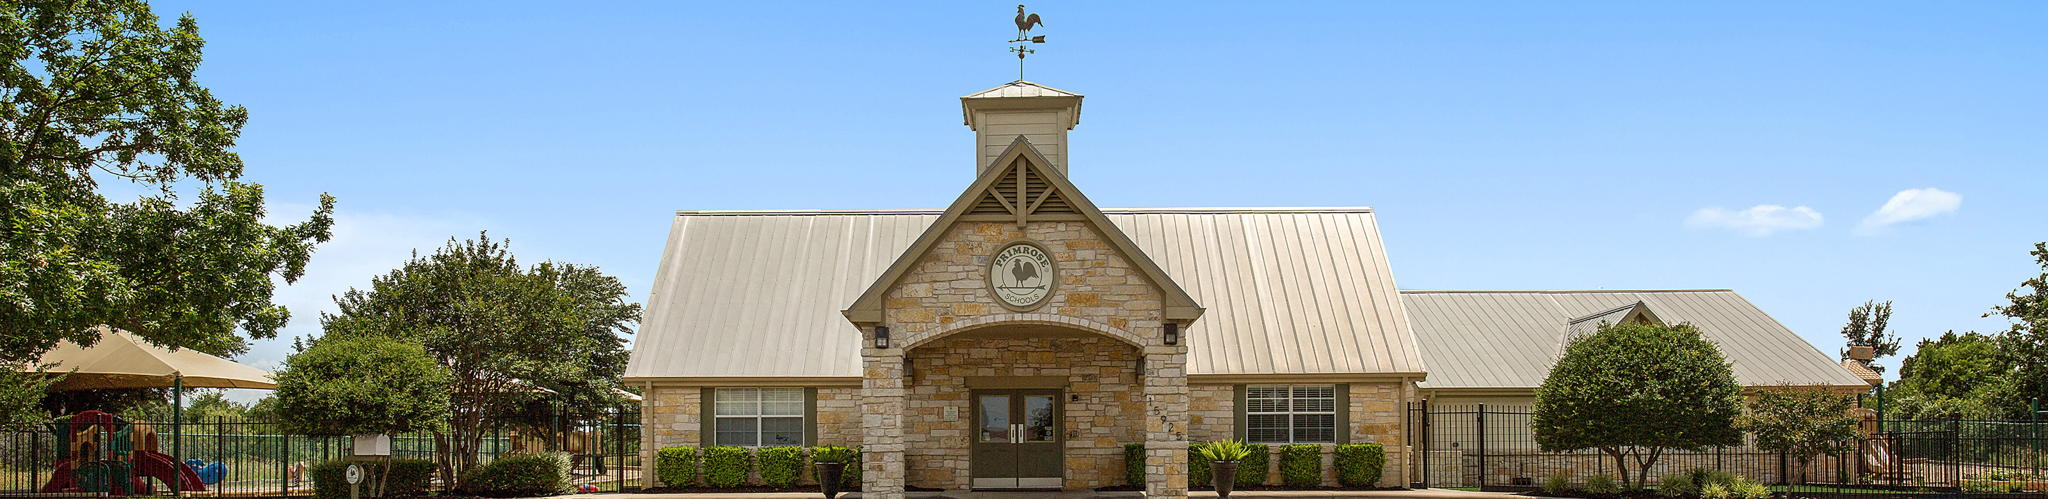 Exterior of a Primrose School of Round Rock